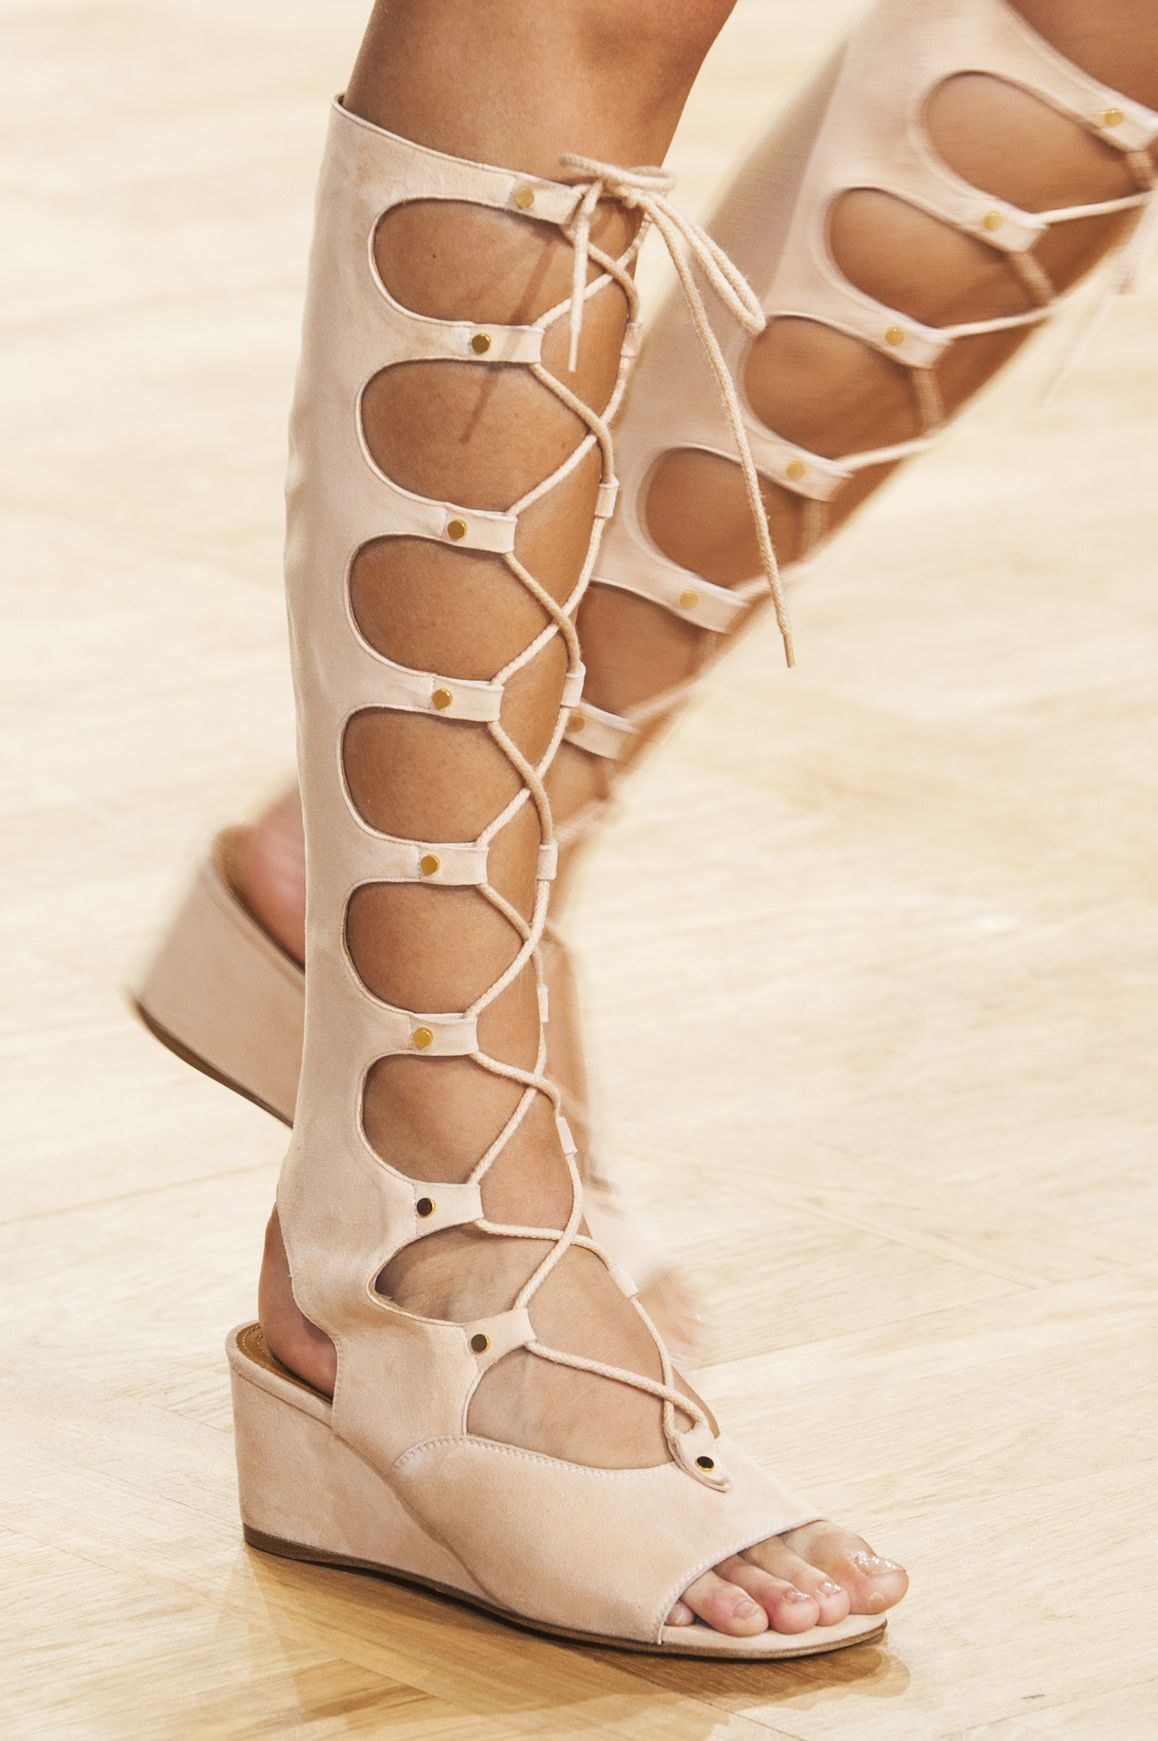 Forum on this topic: Spring 2015 Trend: GladiatorSandals, spring-2015-trend-gladiatorsandals/